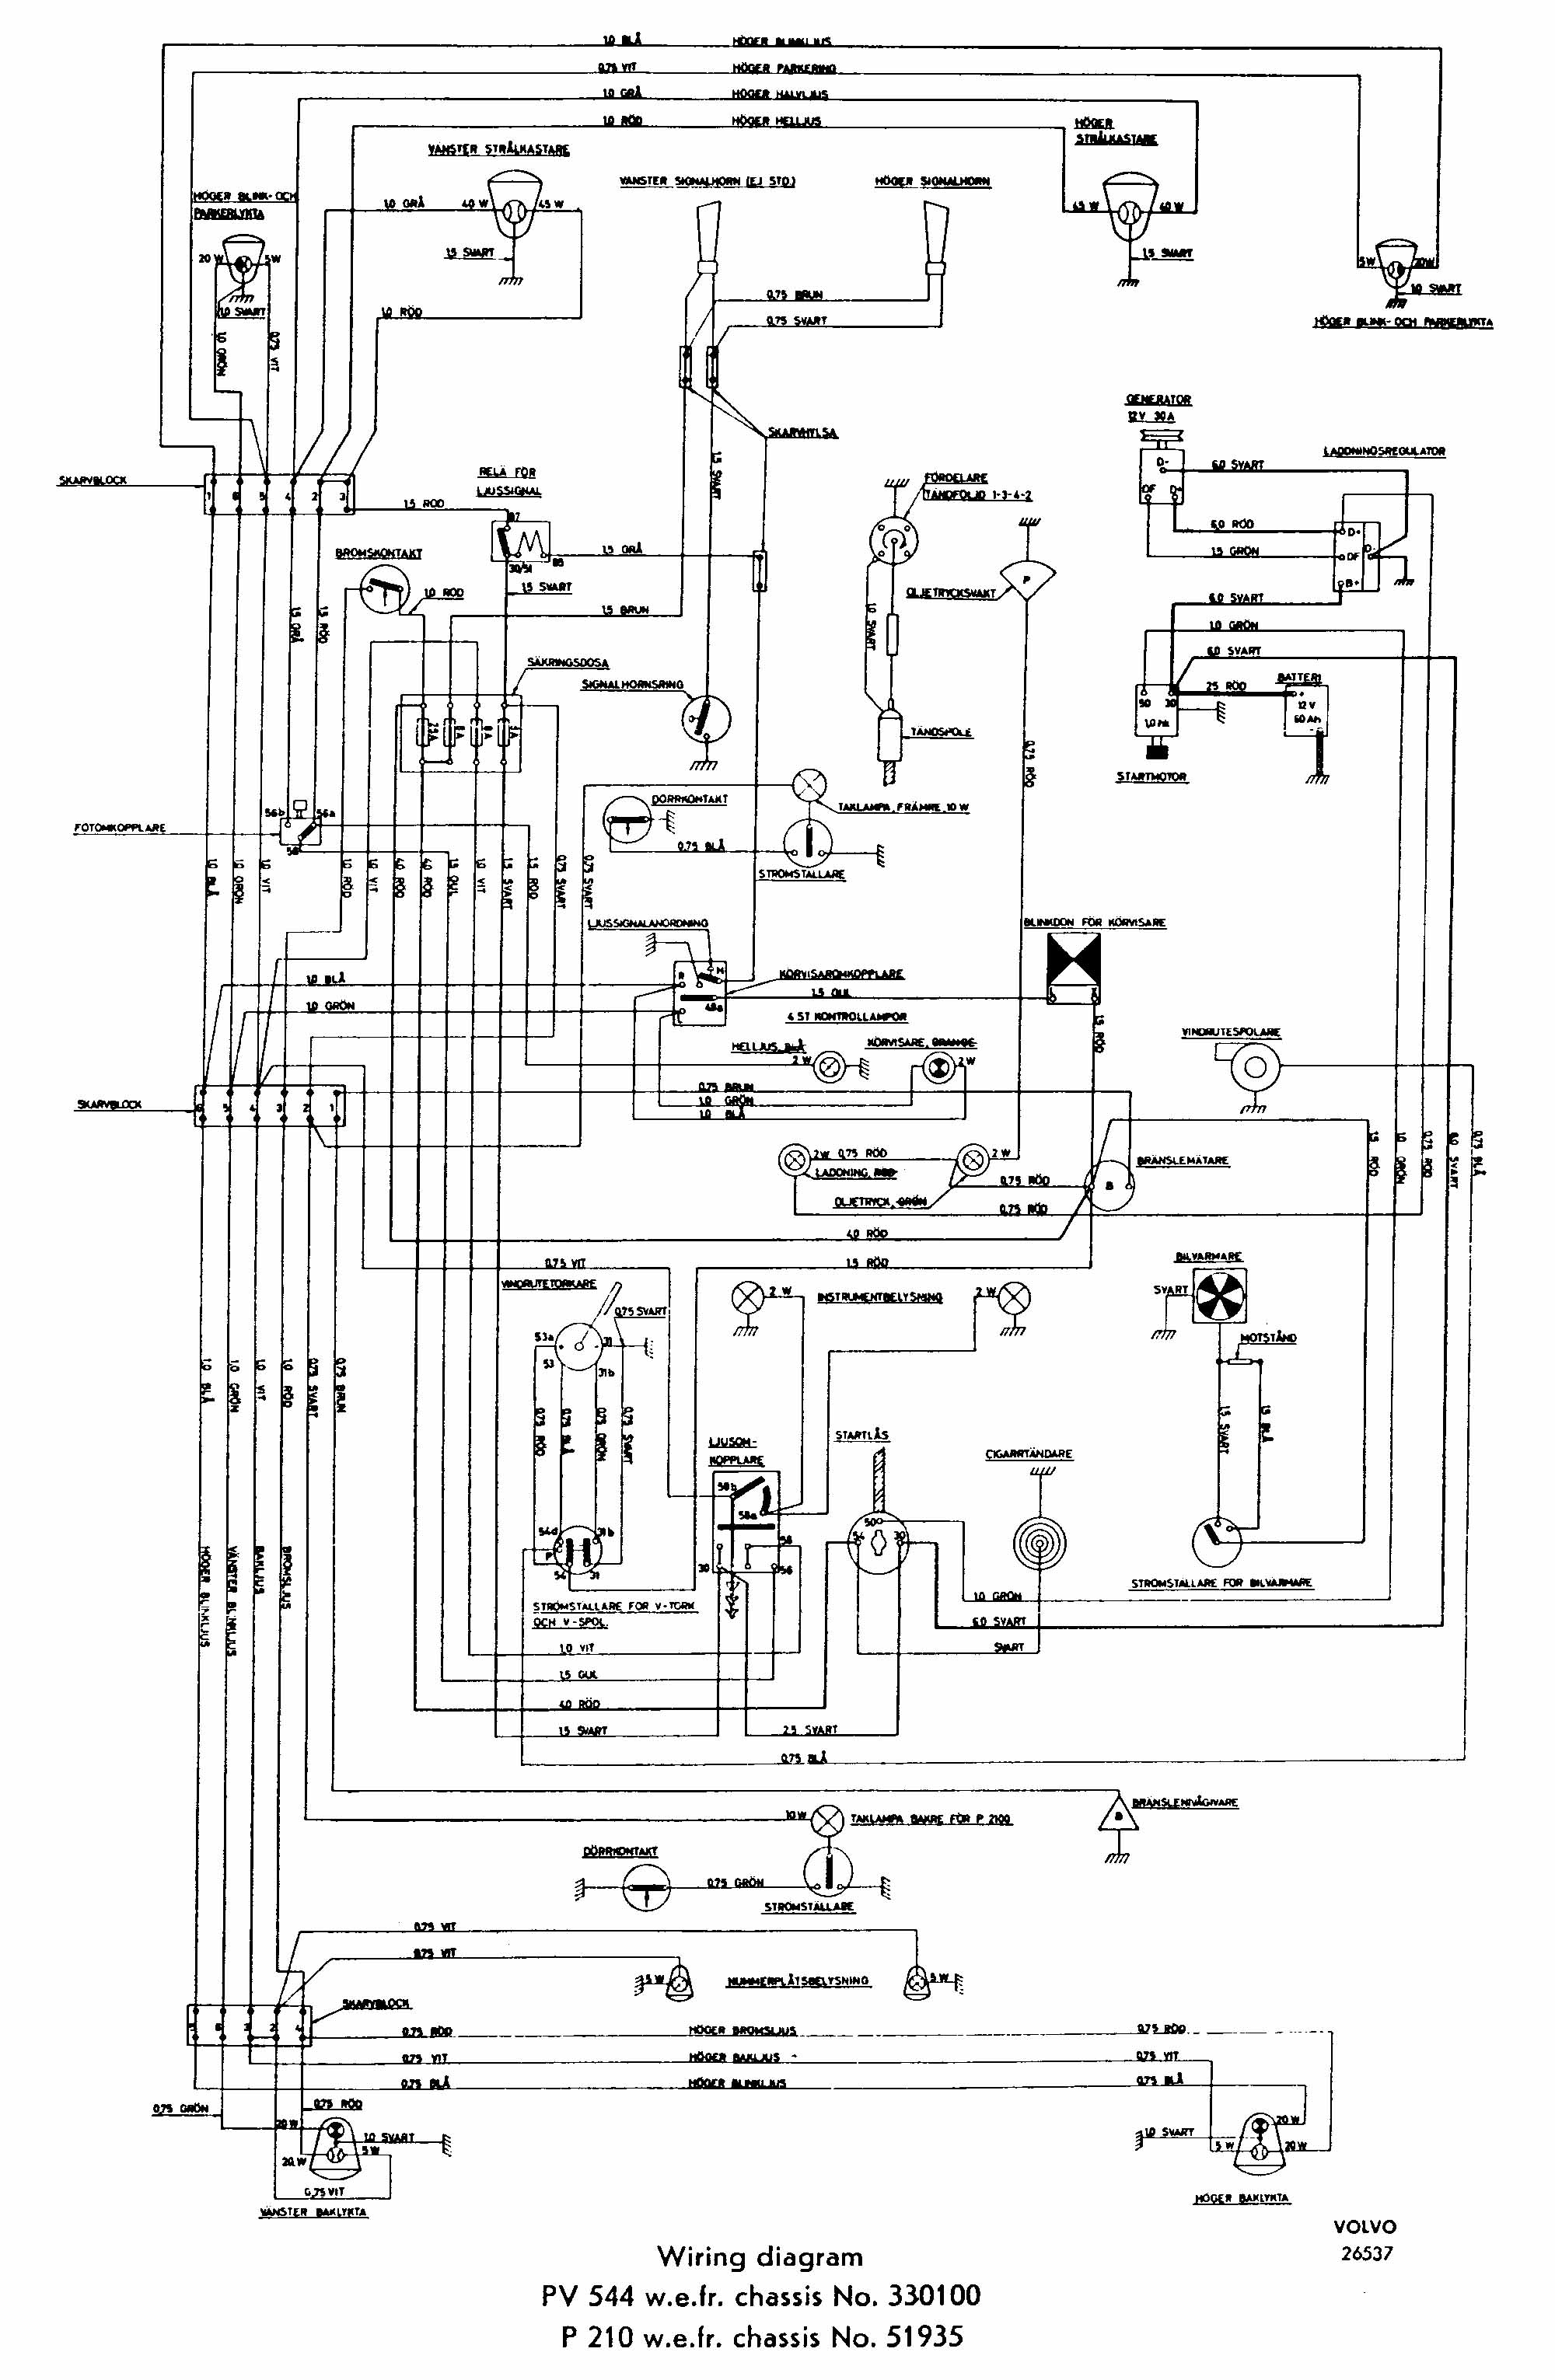 Volvo 122 Wiring Diagram Content Resource Of 2001 V70 Fuse Box 122s Opinions About U2022 Rh Voterid Co S80 Xc70 Electrical Diagrams